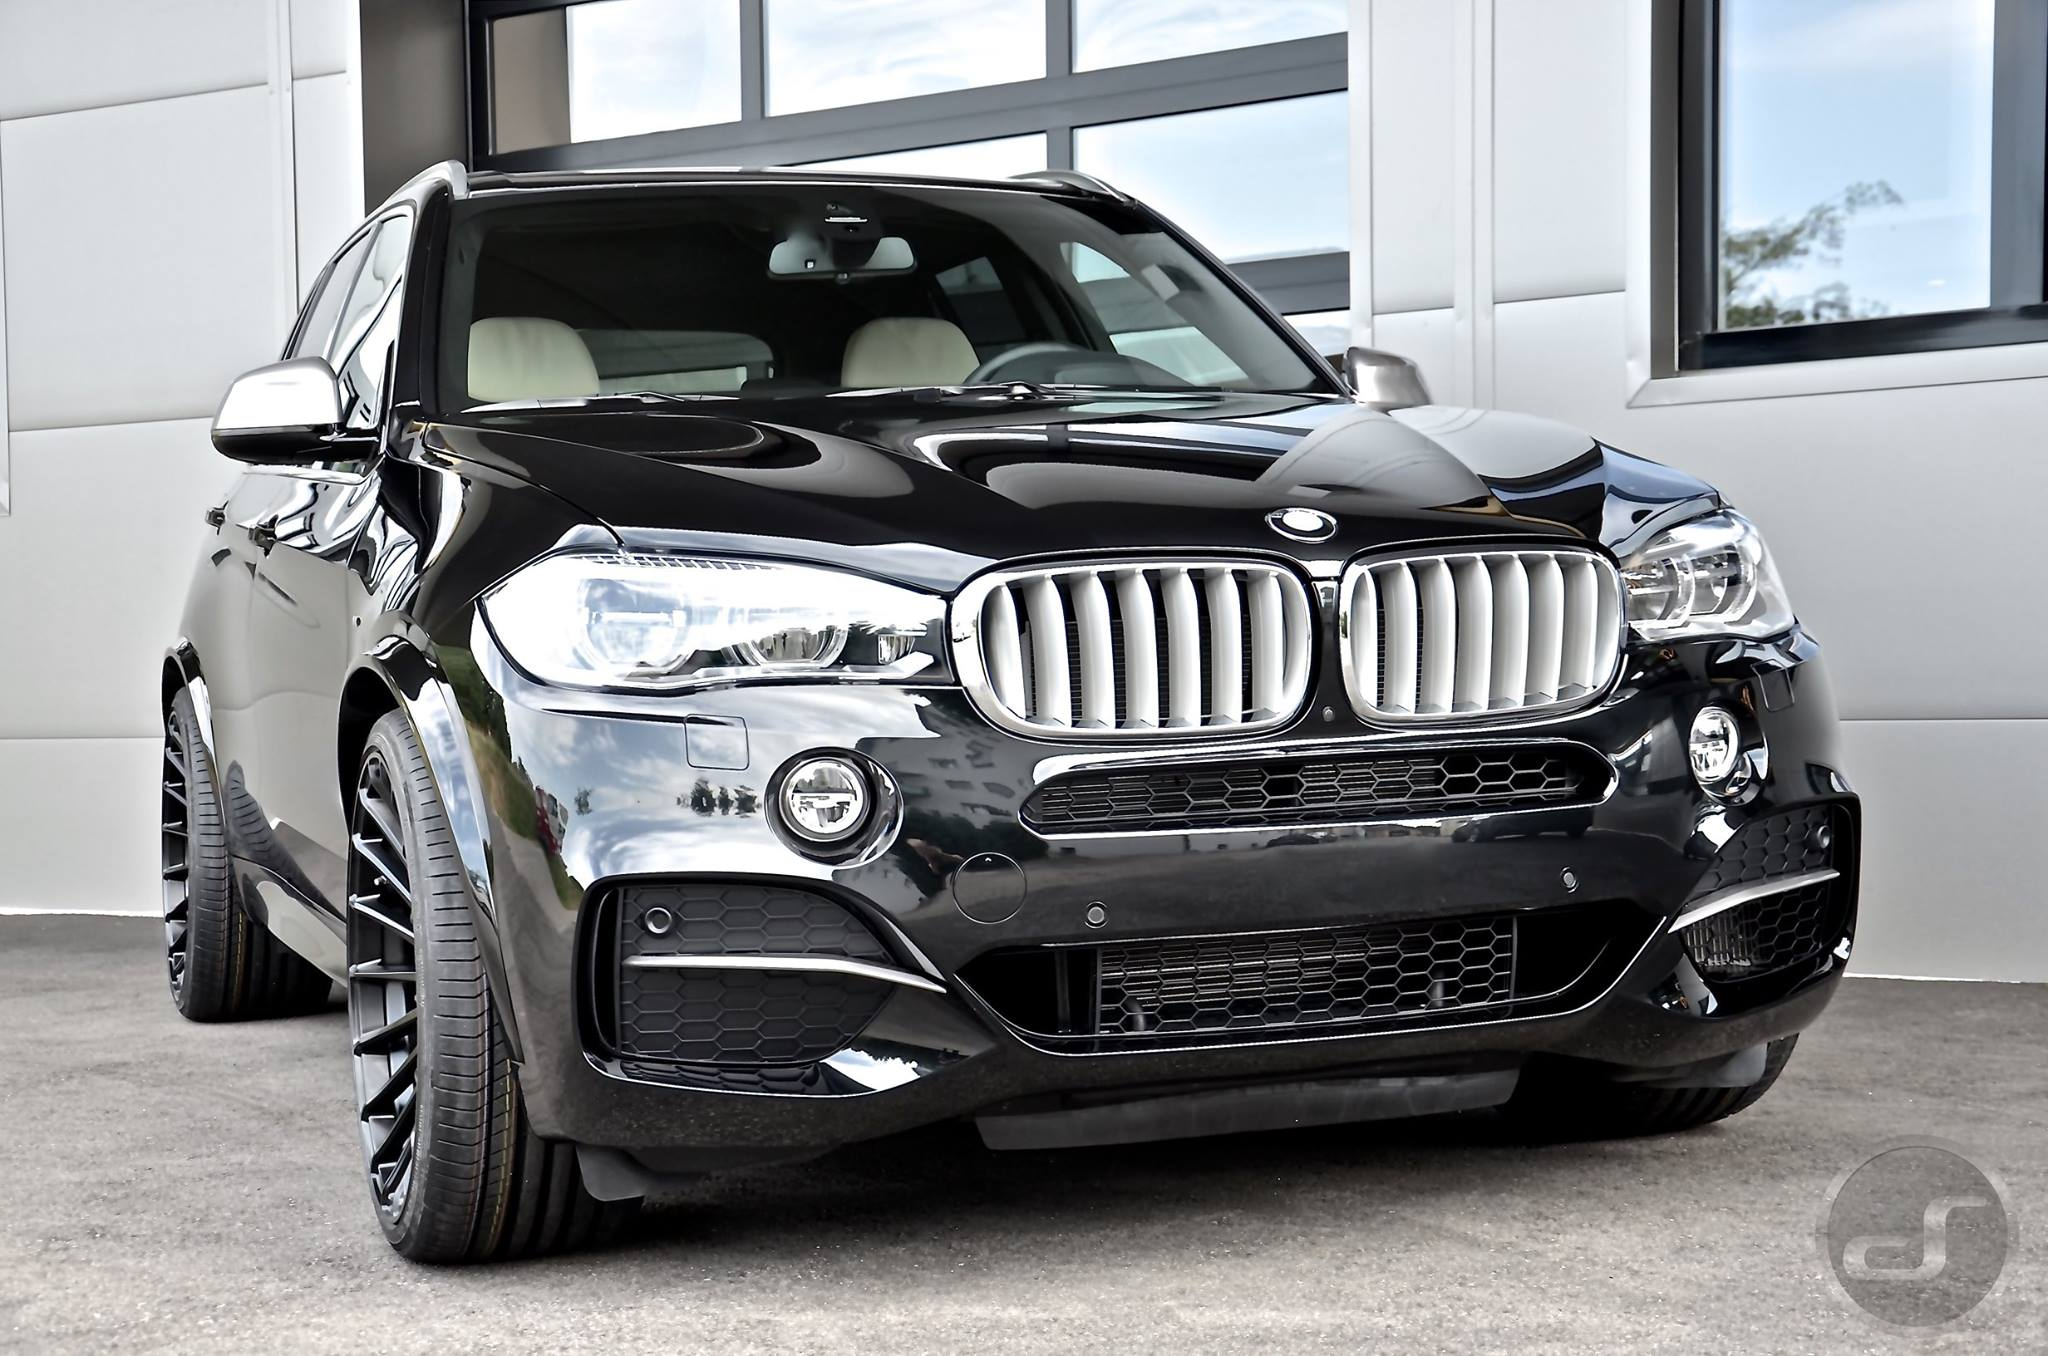 hamann bmw x5 m50d f15 power diesel auf 23 zoll felgen. Black Bedroom Furniture Sets. Home Design Ideas